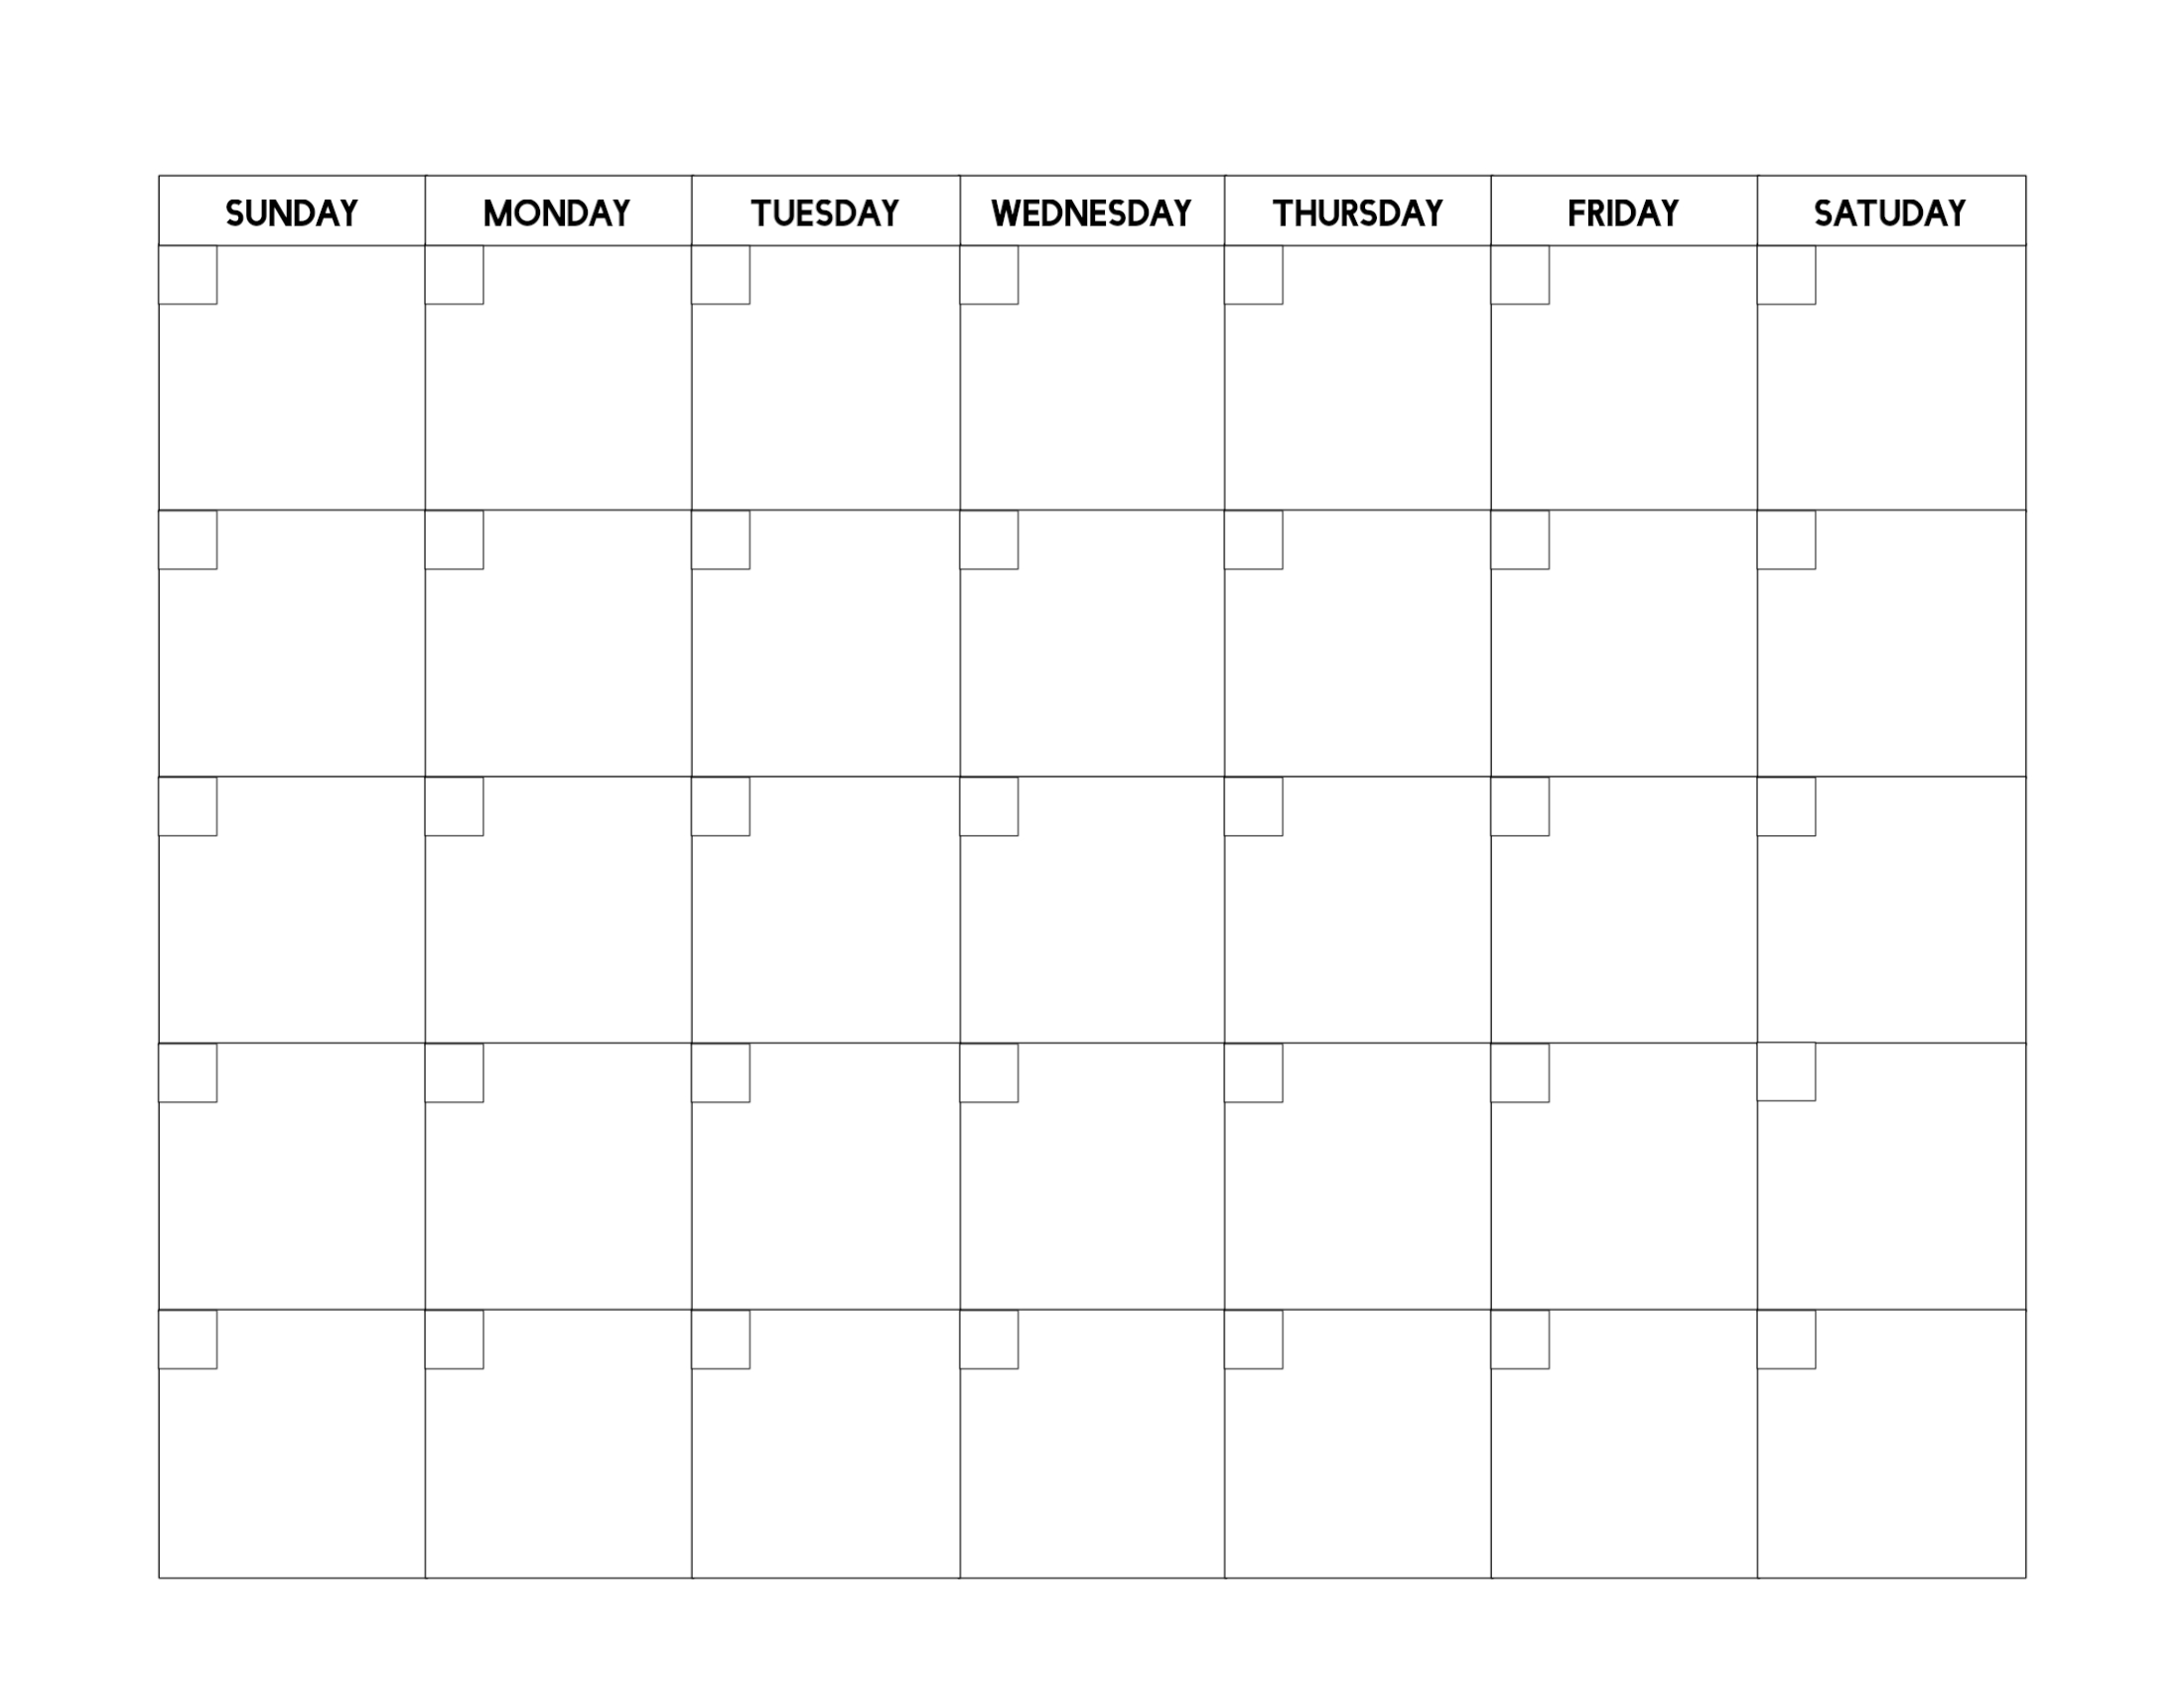 Free Printable Blank Calendar Template - Paper Trail Design Dashing Printable Calendar With Date Boxes